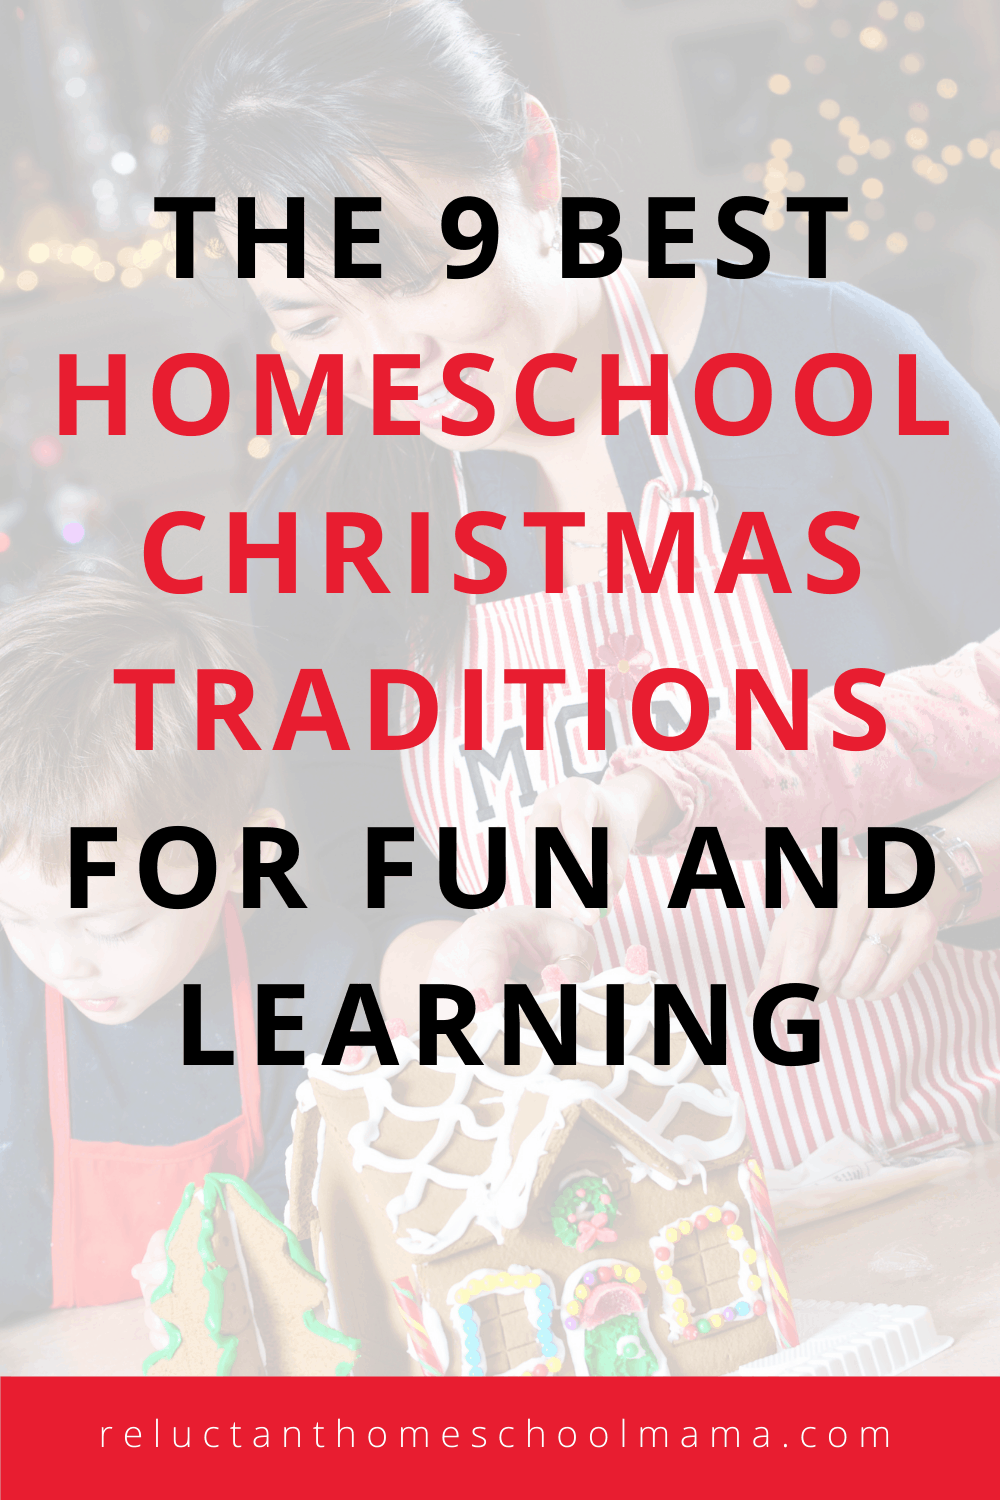 The 9 Best Homeschool Christmas Traditions for Fun and Learning